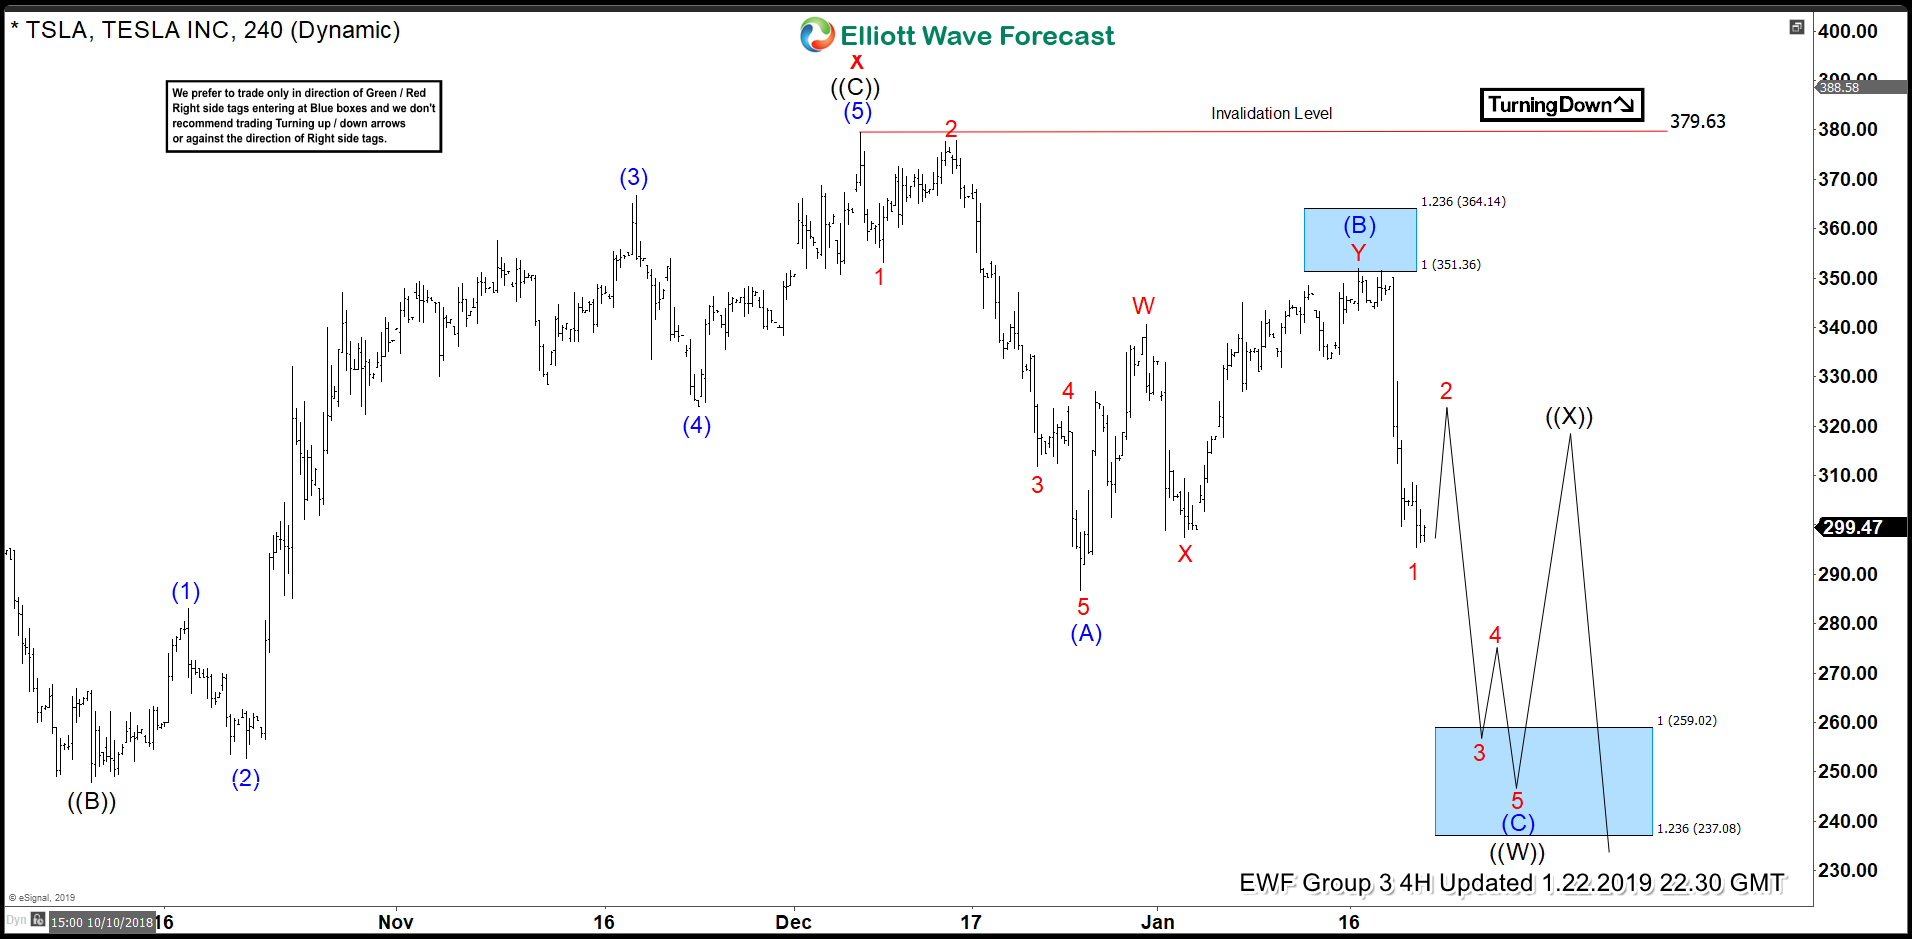 Near Term Elliott Wave Structure in TSLA